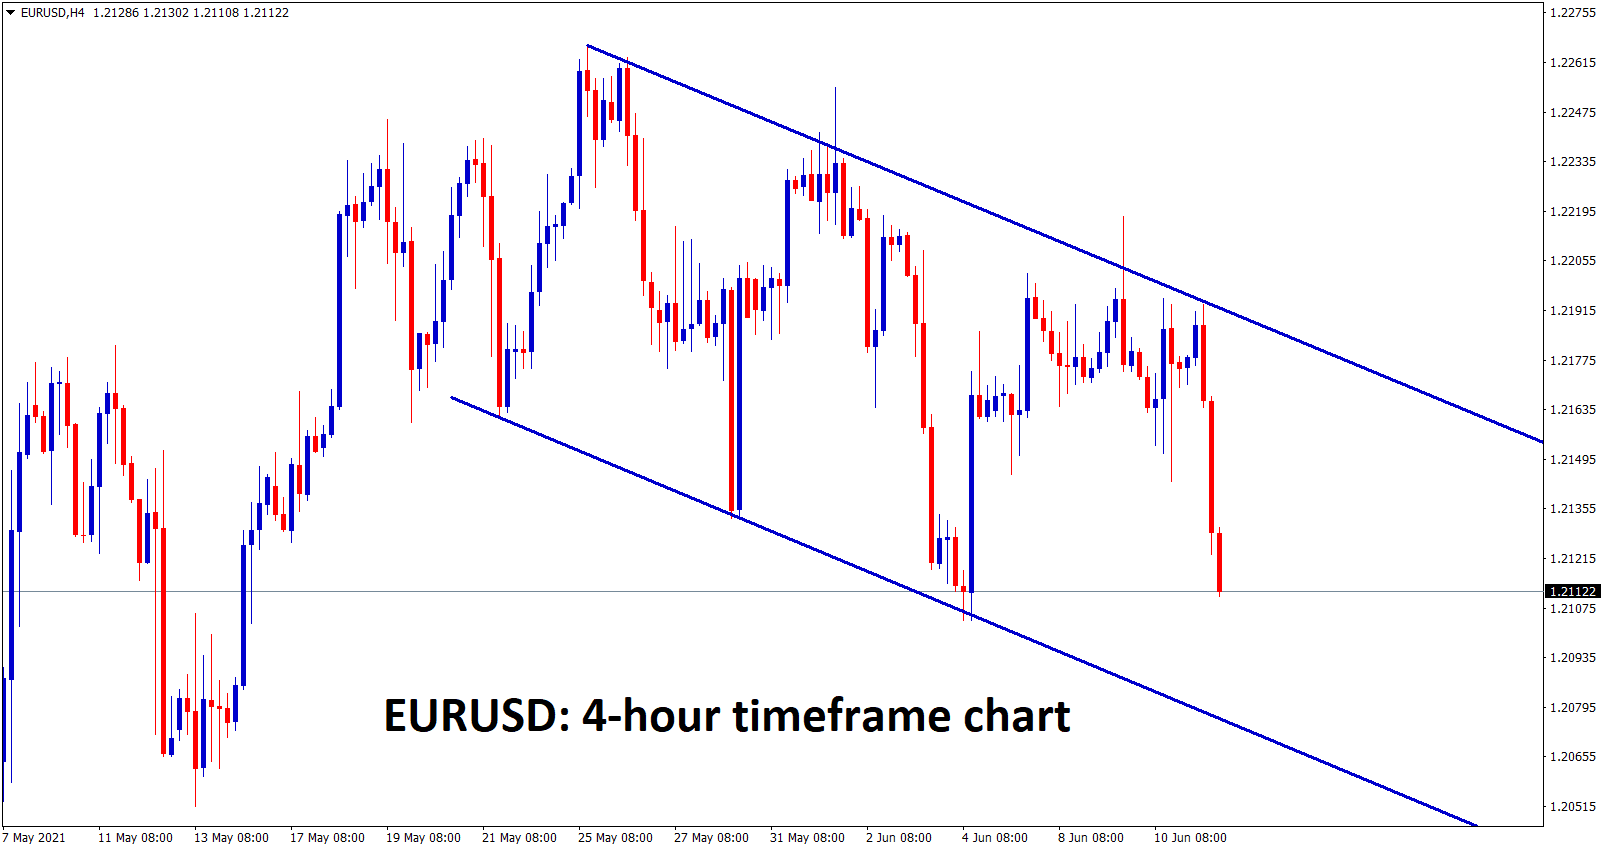 EURUSD is moving in a descending channel forming lower highs and lower lows